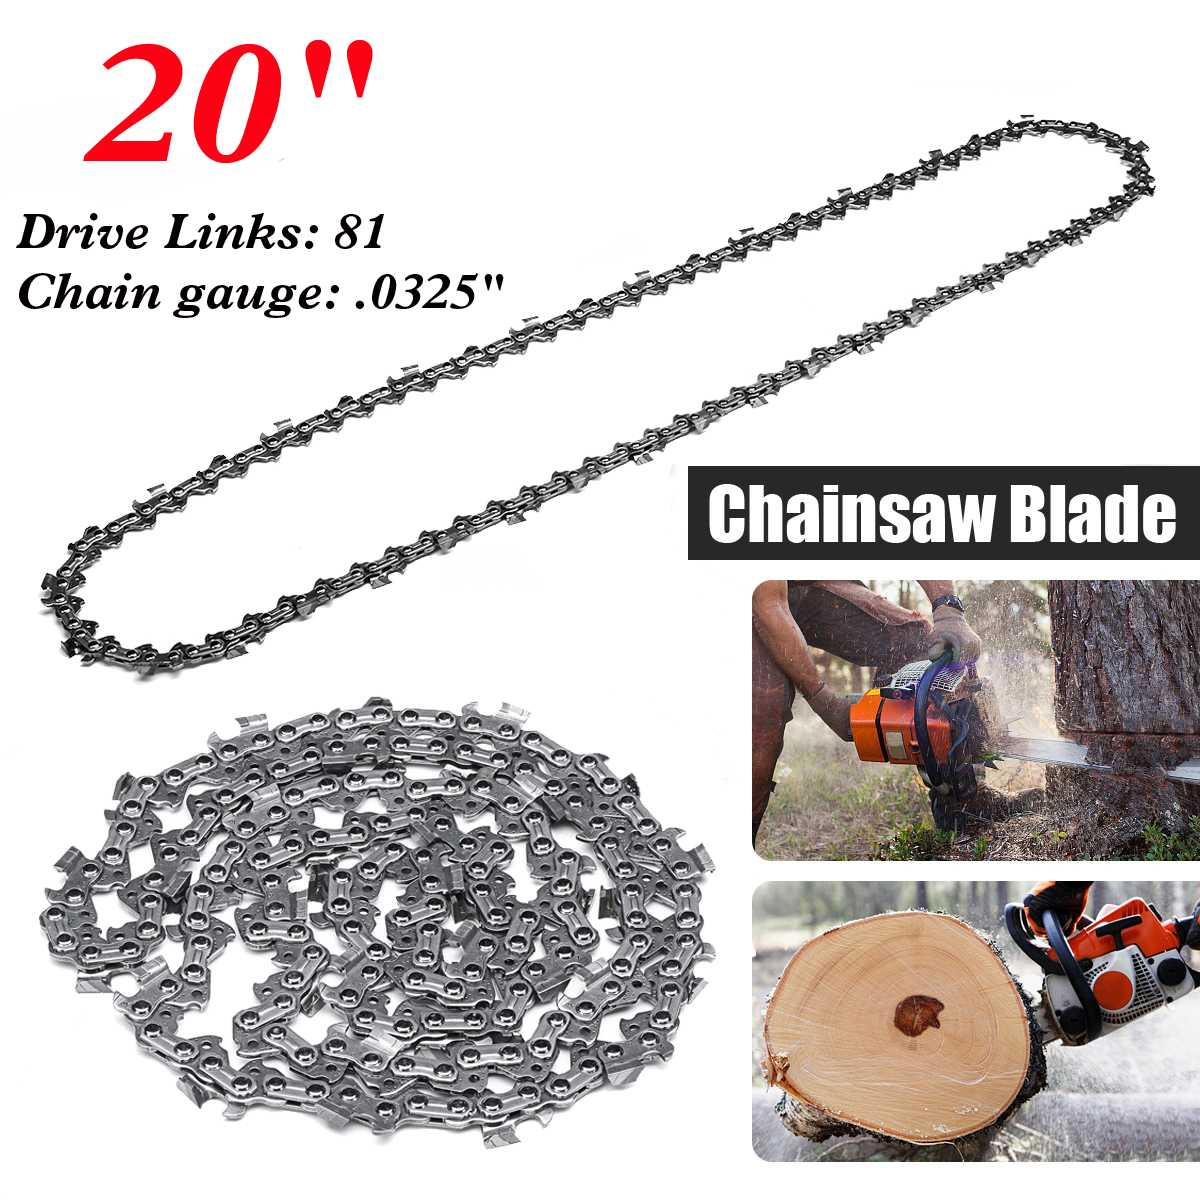 Woodworking Chainsaw Chain 81 Link 20 inch Bar 0.063 x 0.325 LP Garden Chains Saws Alloy Power Tool PartsWoodworking Chainsaw Chain 81 Link 20 inch Bar 0.063 x 0.325 LP Garden Chains Saws Alloy Power Tool Parts